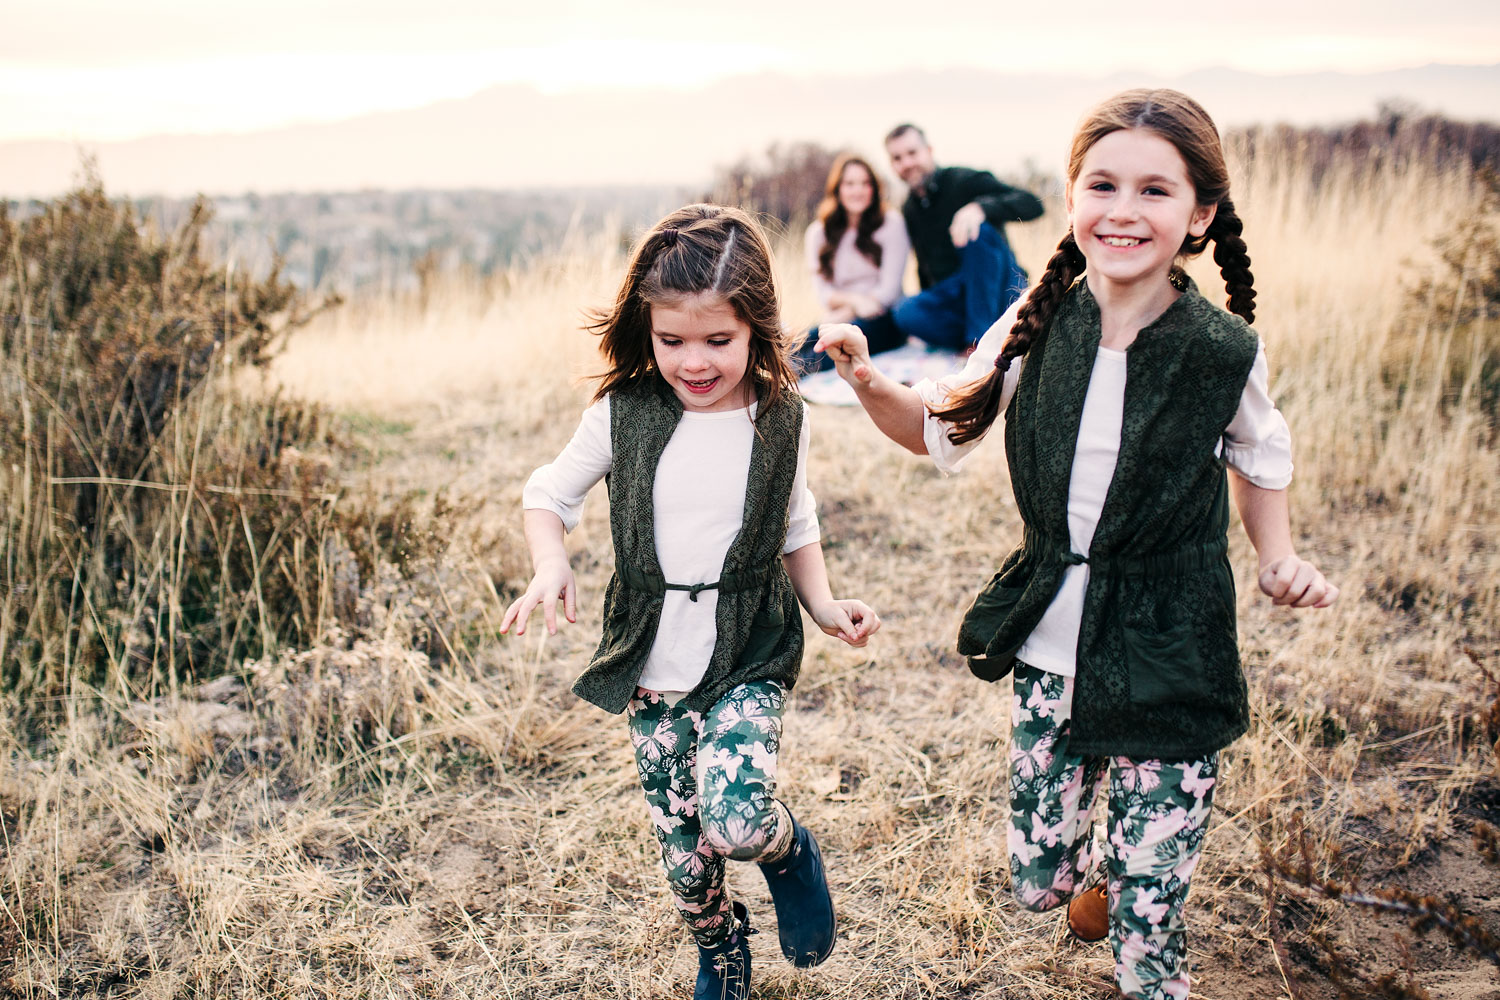 Two girls run and play during a fun family photo session with Amy Wright Photography in Roseville, California.